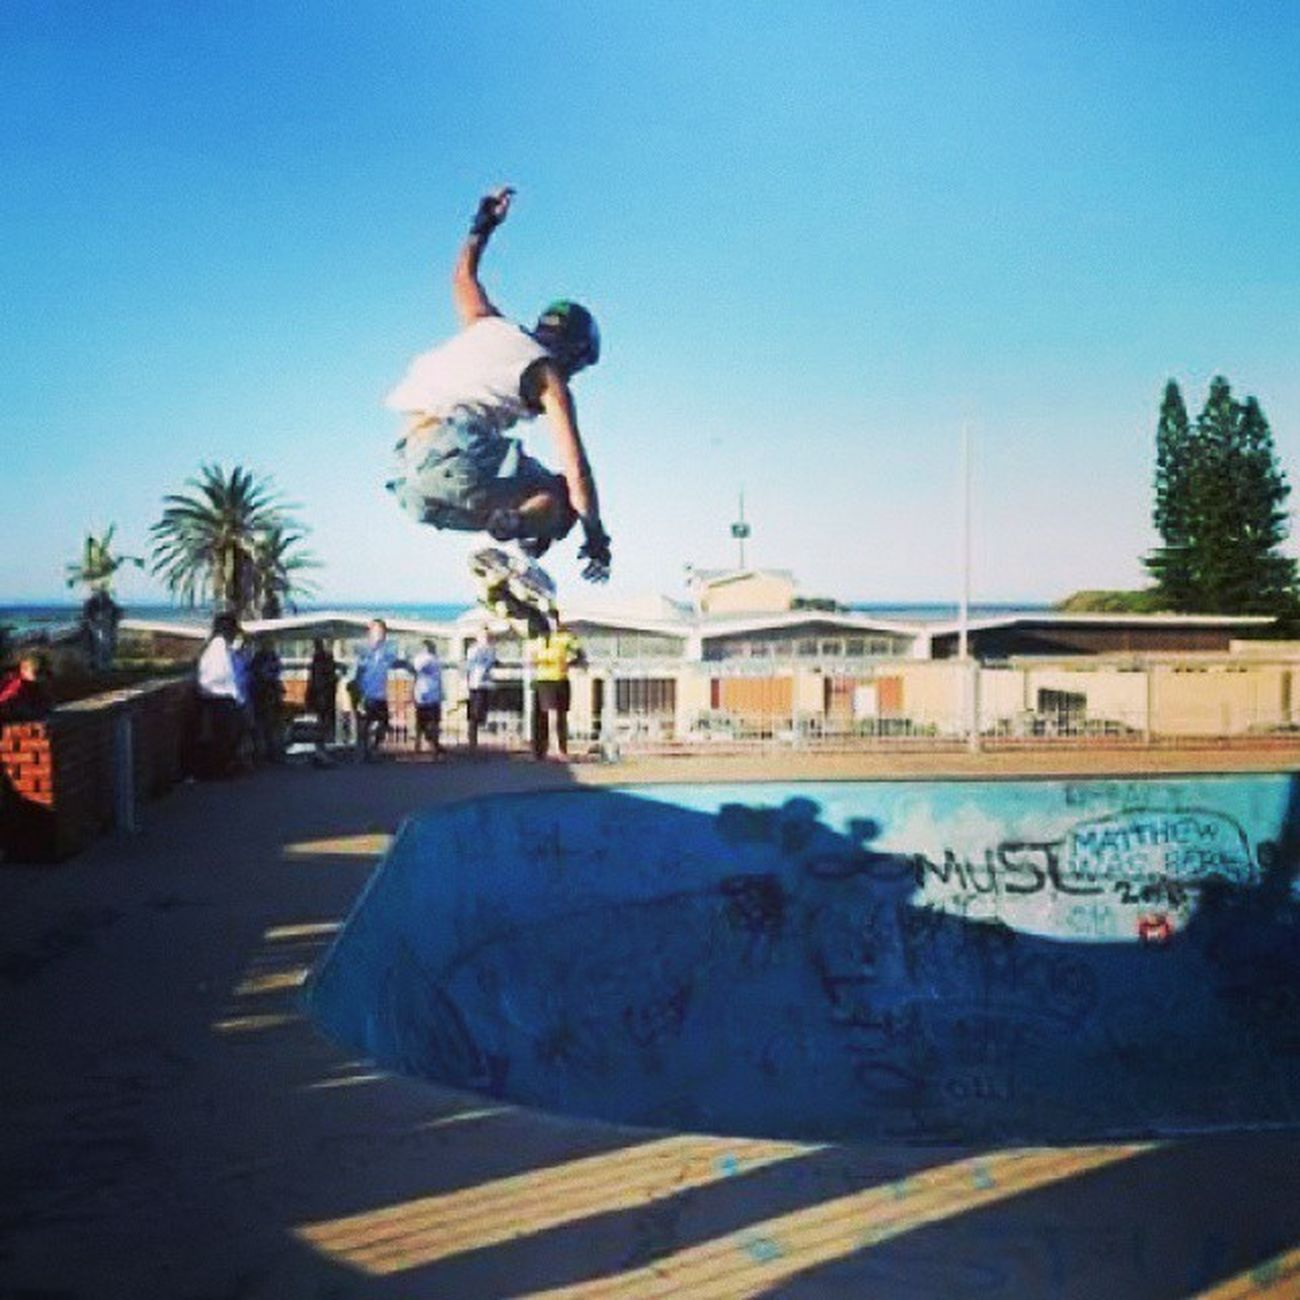 Missing Port Elizabeth. ♥ Portelizabeth Southafrica Happytimes Beach Ocean Sea Clouds Memorablemoments April 2014 Thingsilove Thingsimiss ♥♥♥ Skatepark Rollerblades Skating Bowls Streetart